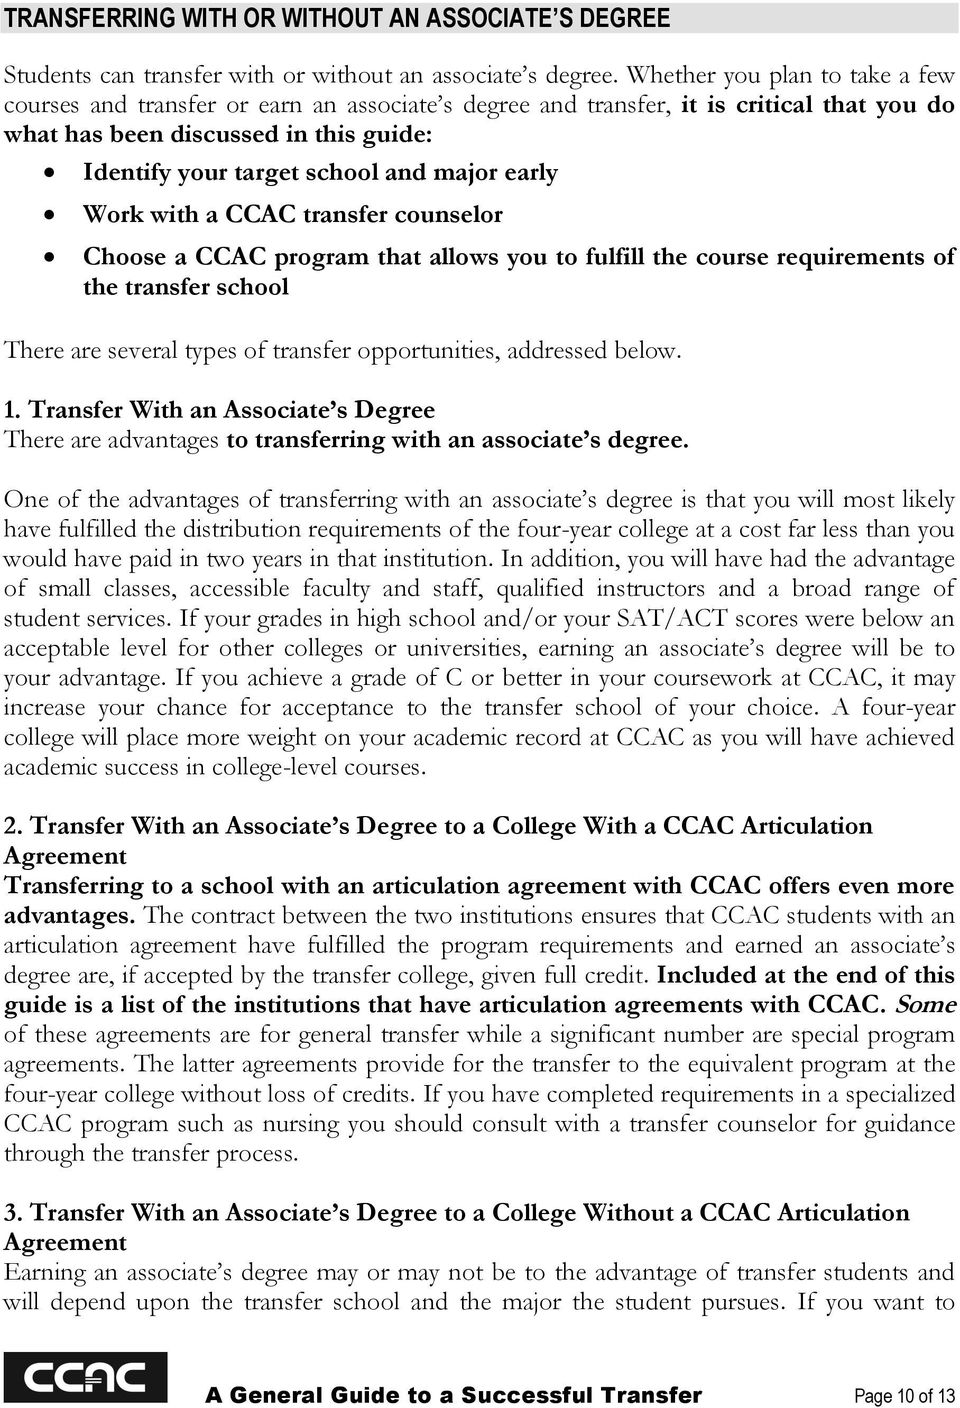 early Work with a CCAC transfer counselor Choose a CCAC program that allows you to fulfill the course requirements of the transfer school There are several types of transfer opportunities, addressed